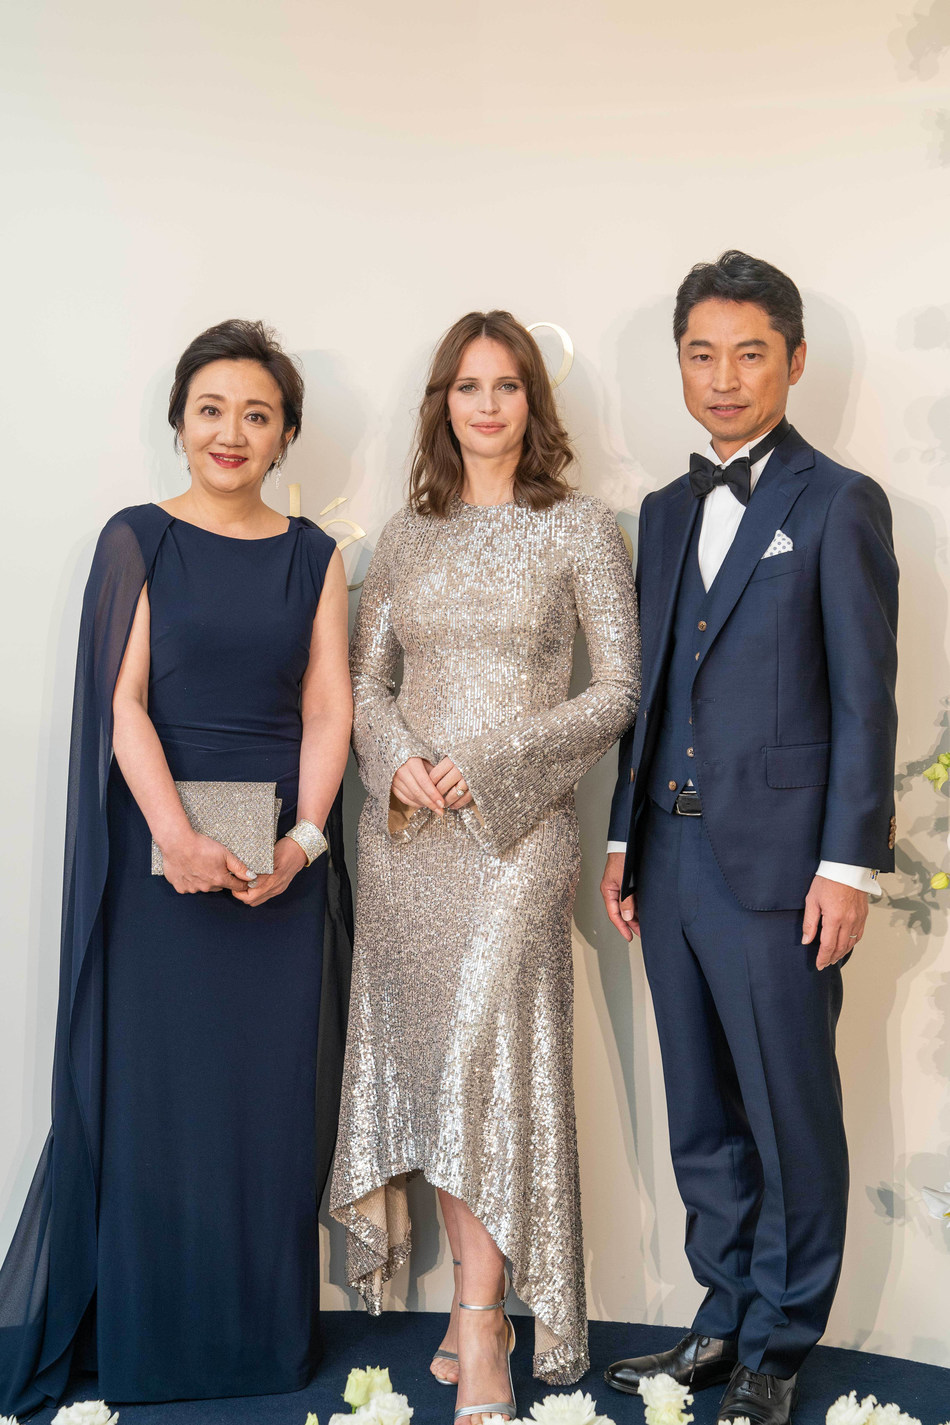 Ms Yukari Suzuki, Clé de Peau Beauté Chief Brand Officer, Ms Felicity Jones, Clé de Peau Beauté Global Brand Ambassador and Mr Katsunori Yoshida, Clé de Peau Beauté Lab Chief Technology Officer celebrate the launch of the new La Crème at a private gala dinner hosted at Corinthia Hotel London